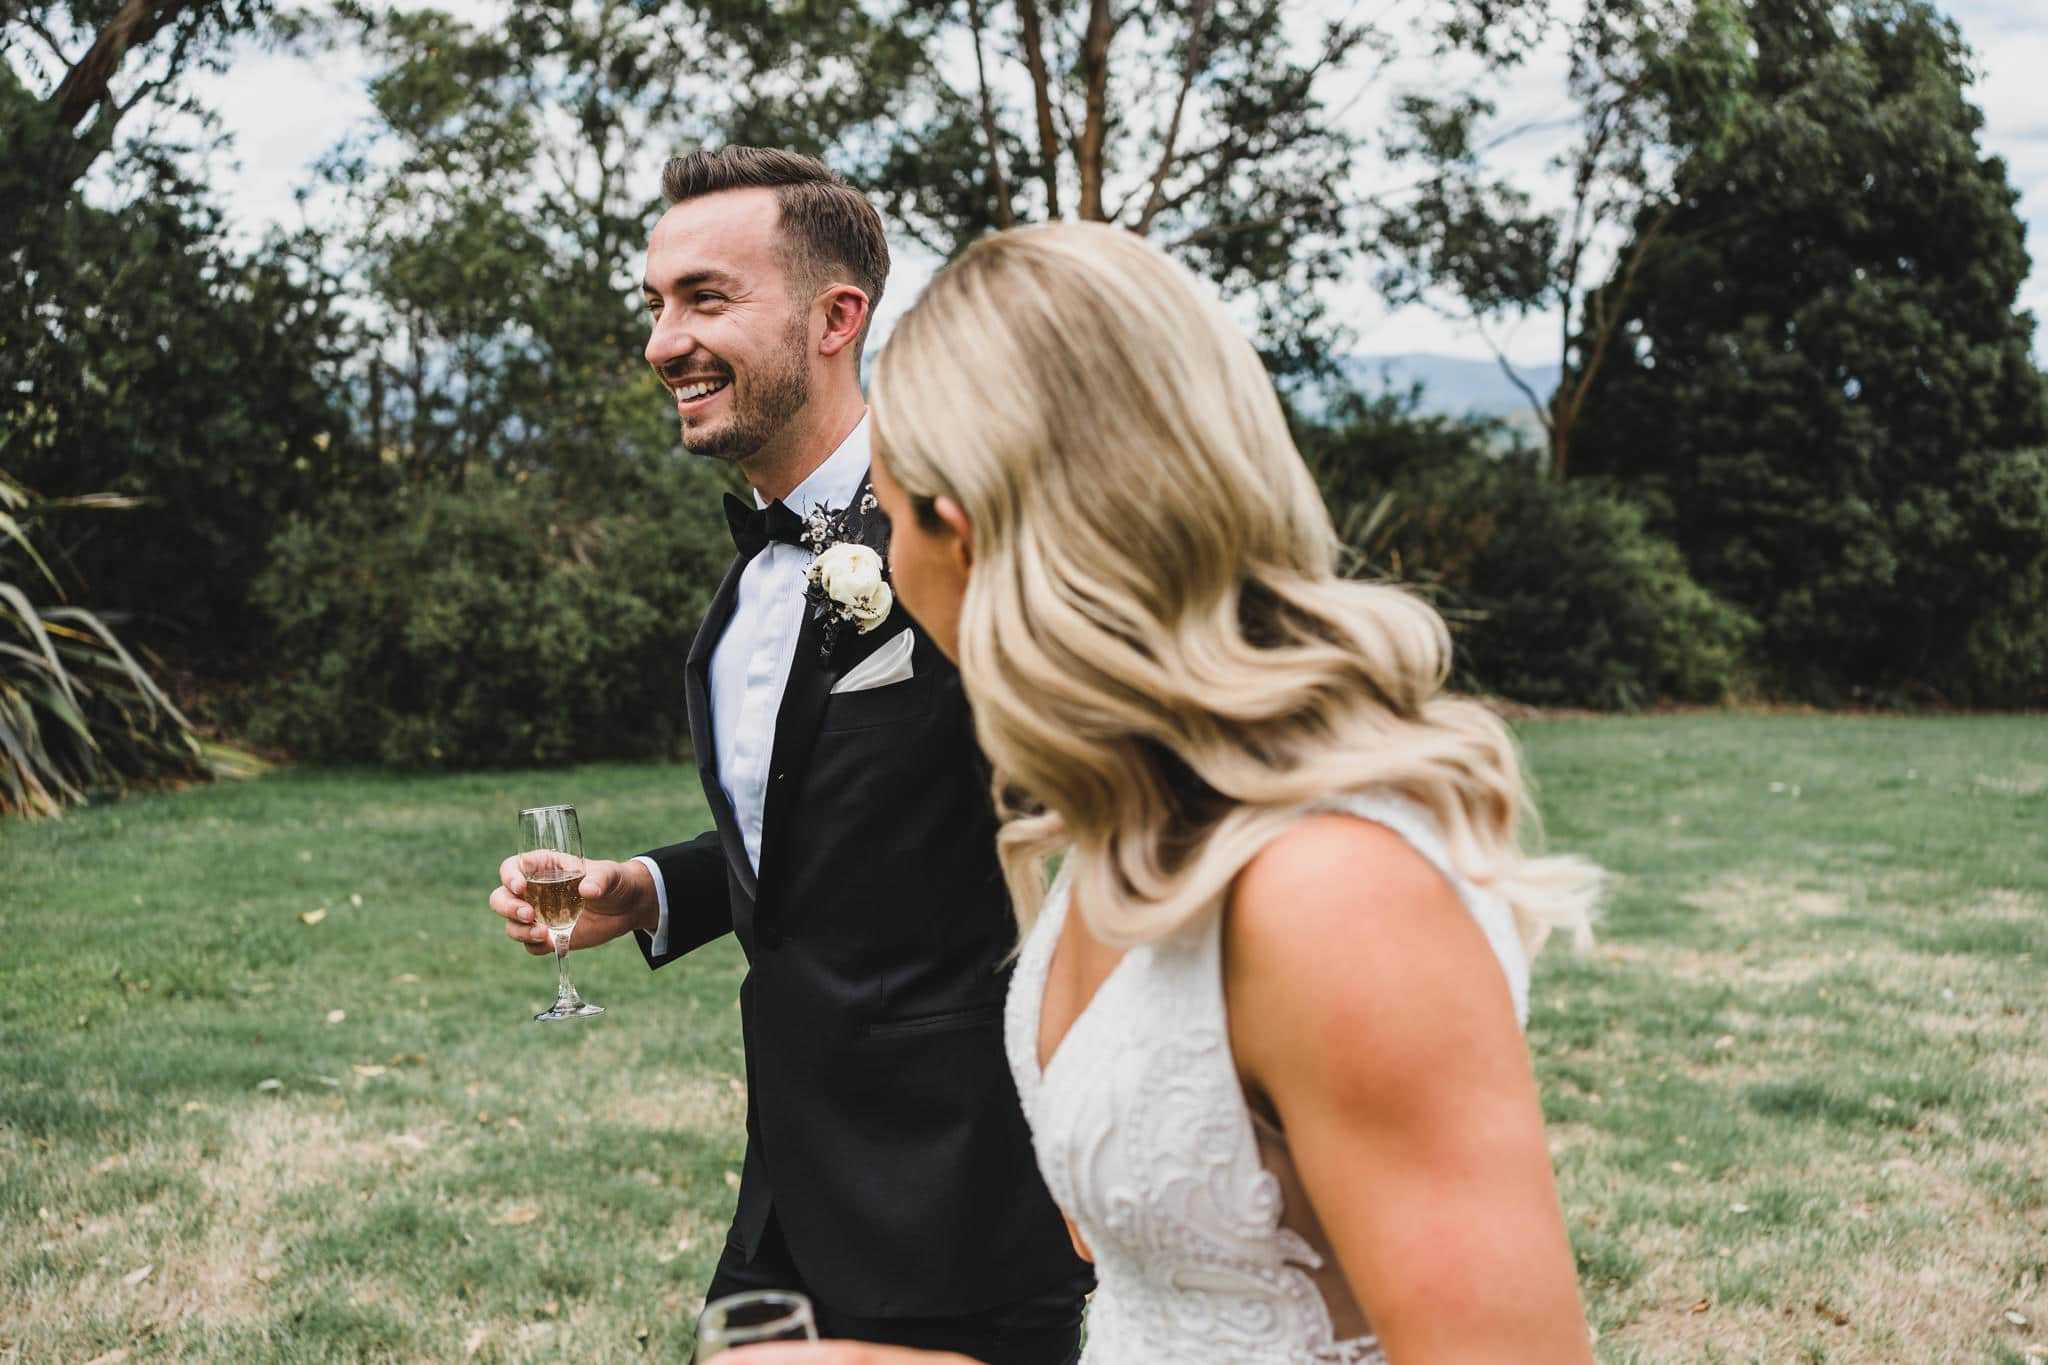 The bride and groom seeing each other for the first time during their first look